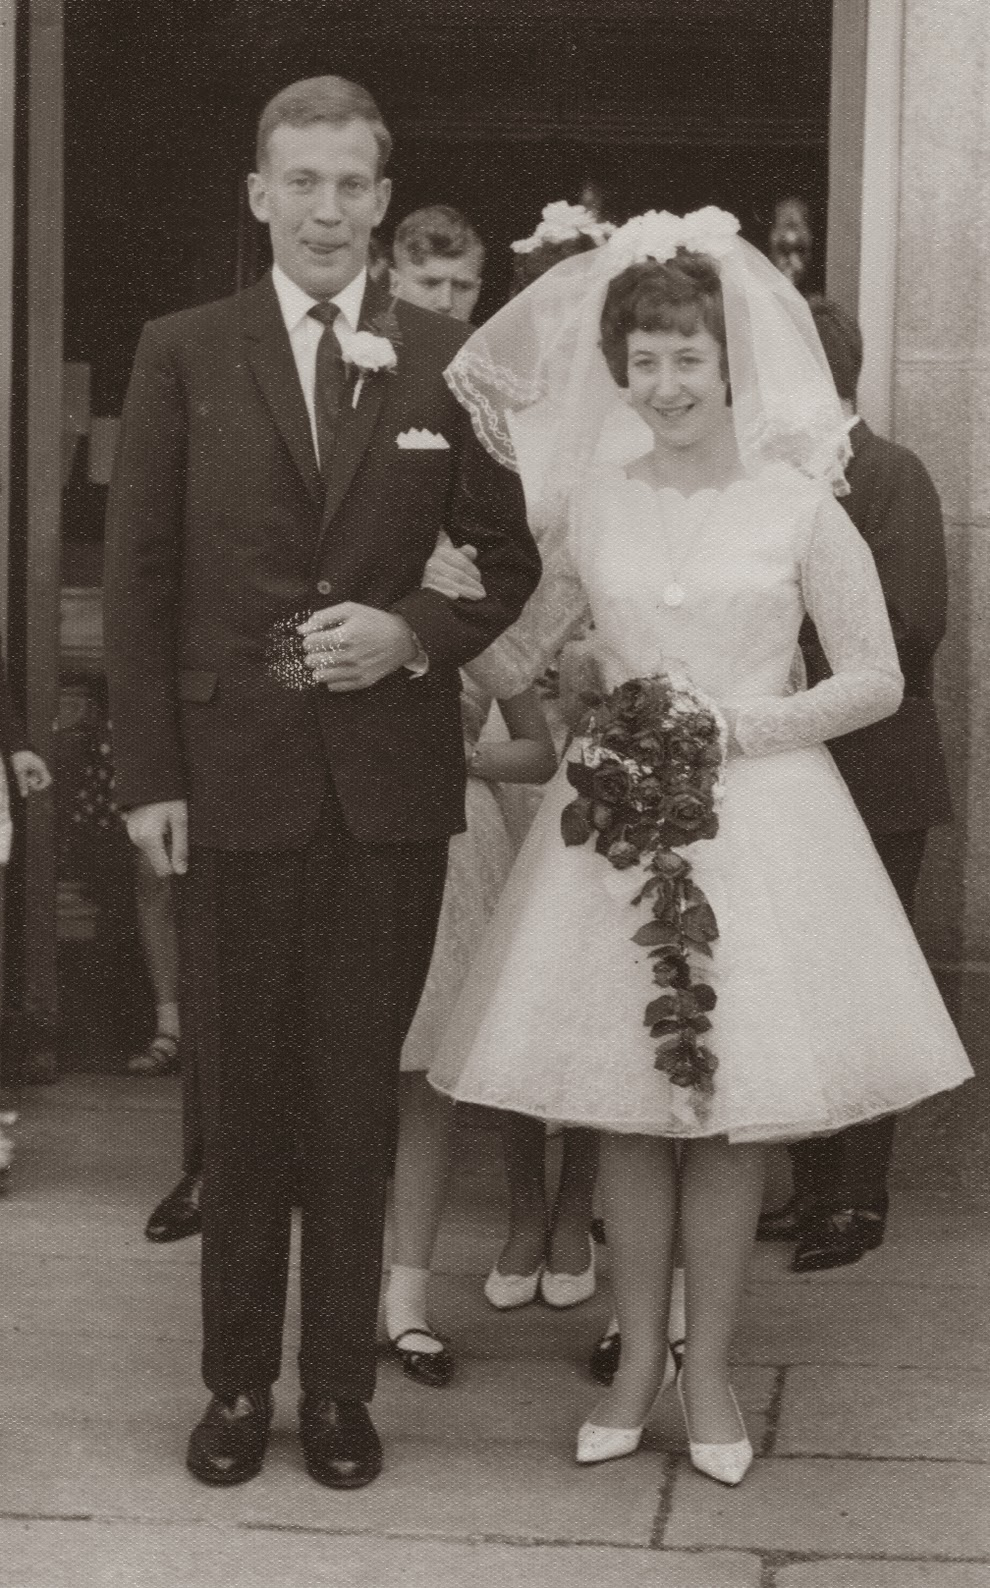 Adorable real vintage wedding photos from the 1960s - Retro vintage ...